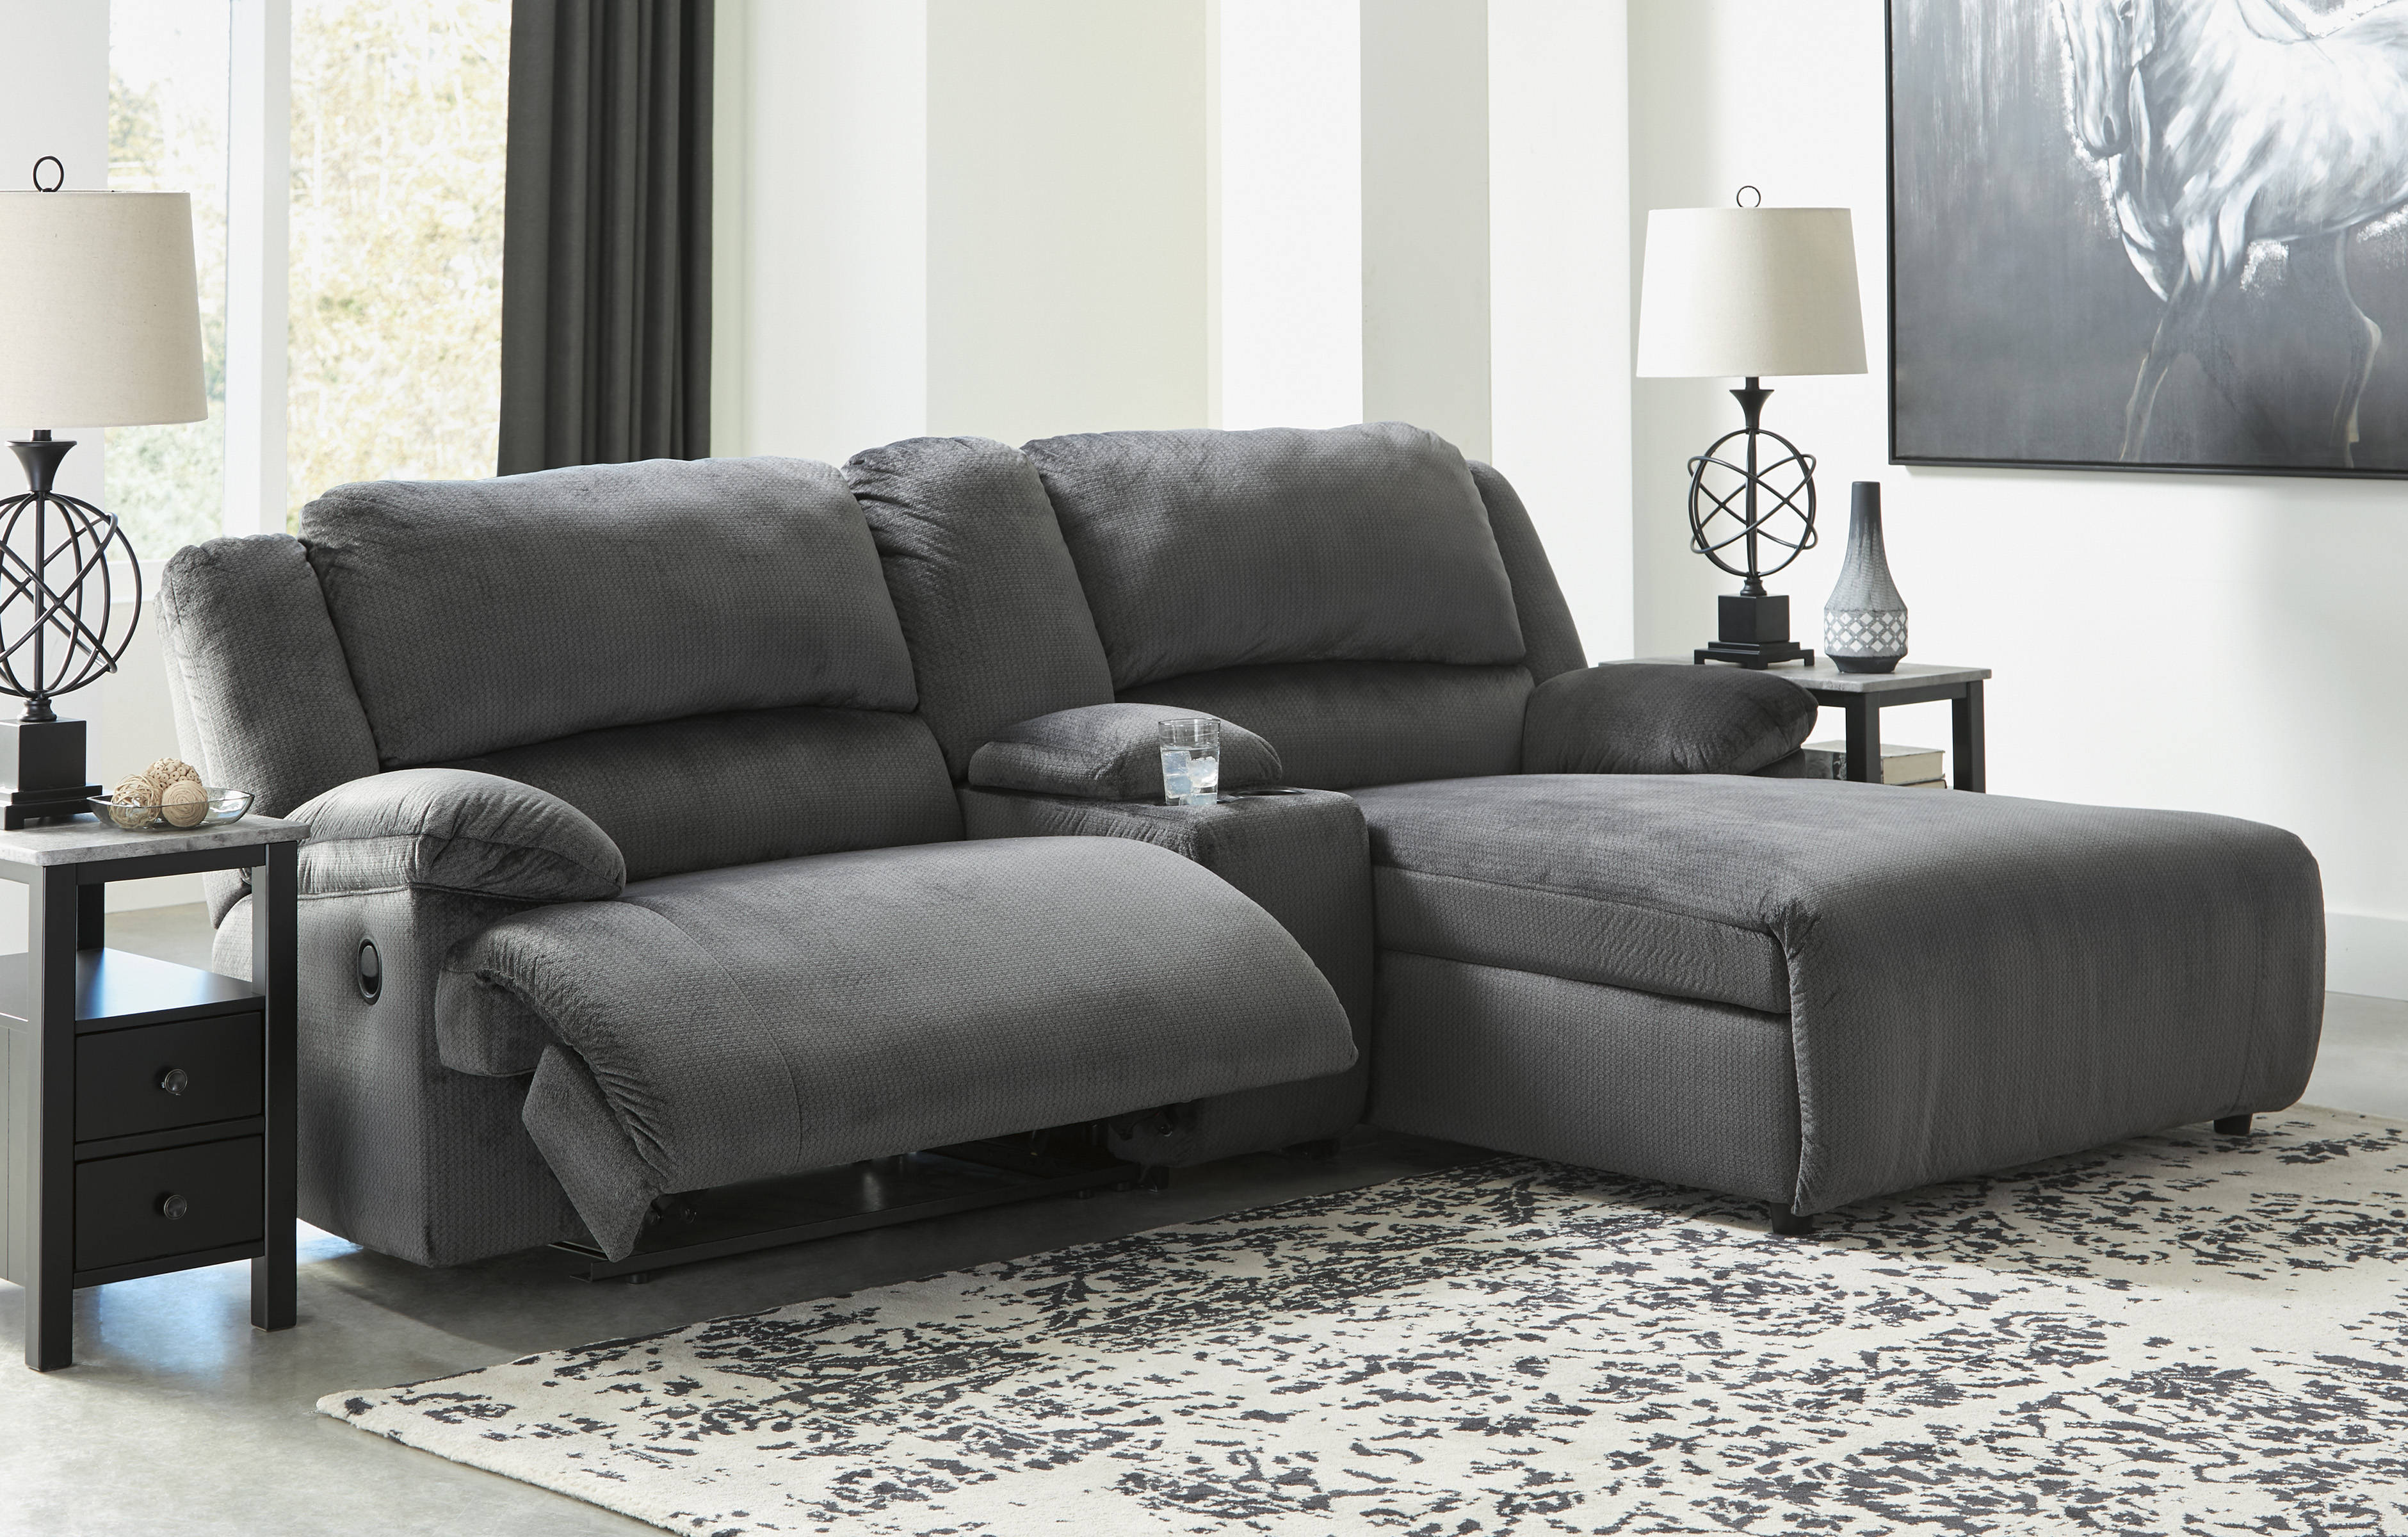 Ashley Furniture Clonmel Charcoal 3pc Raf Sectional With